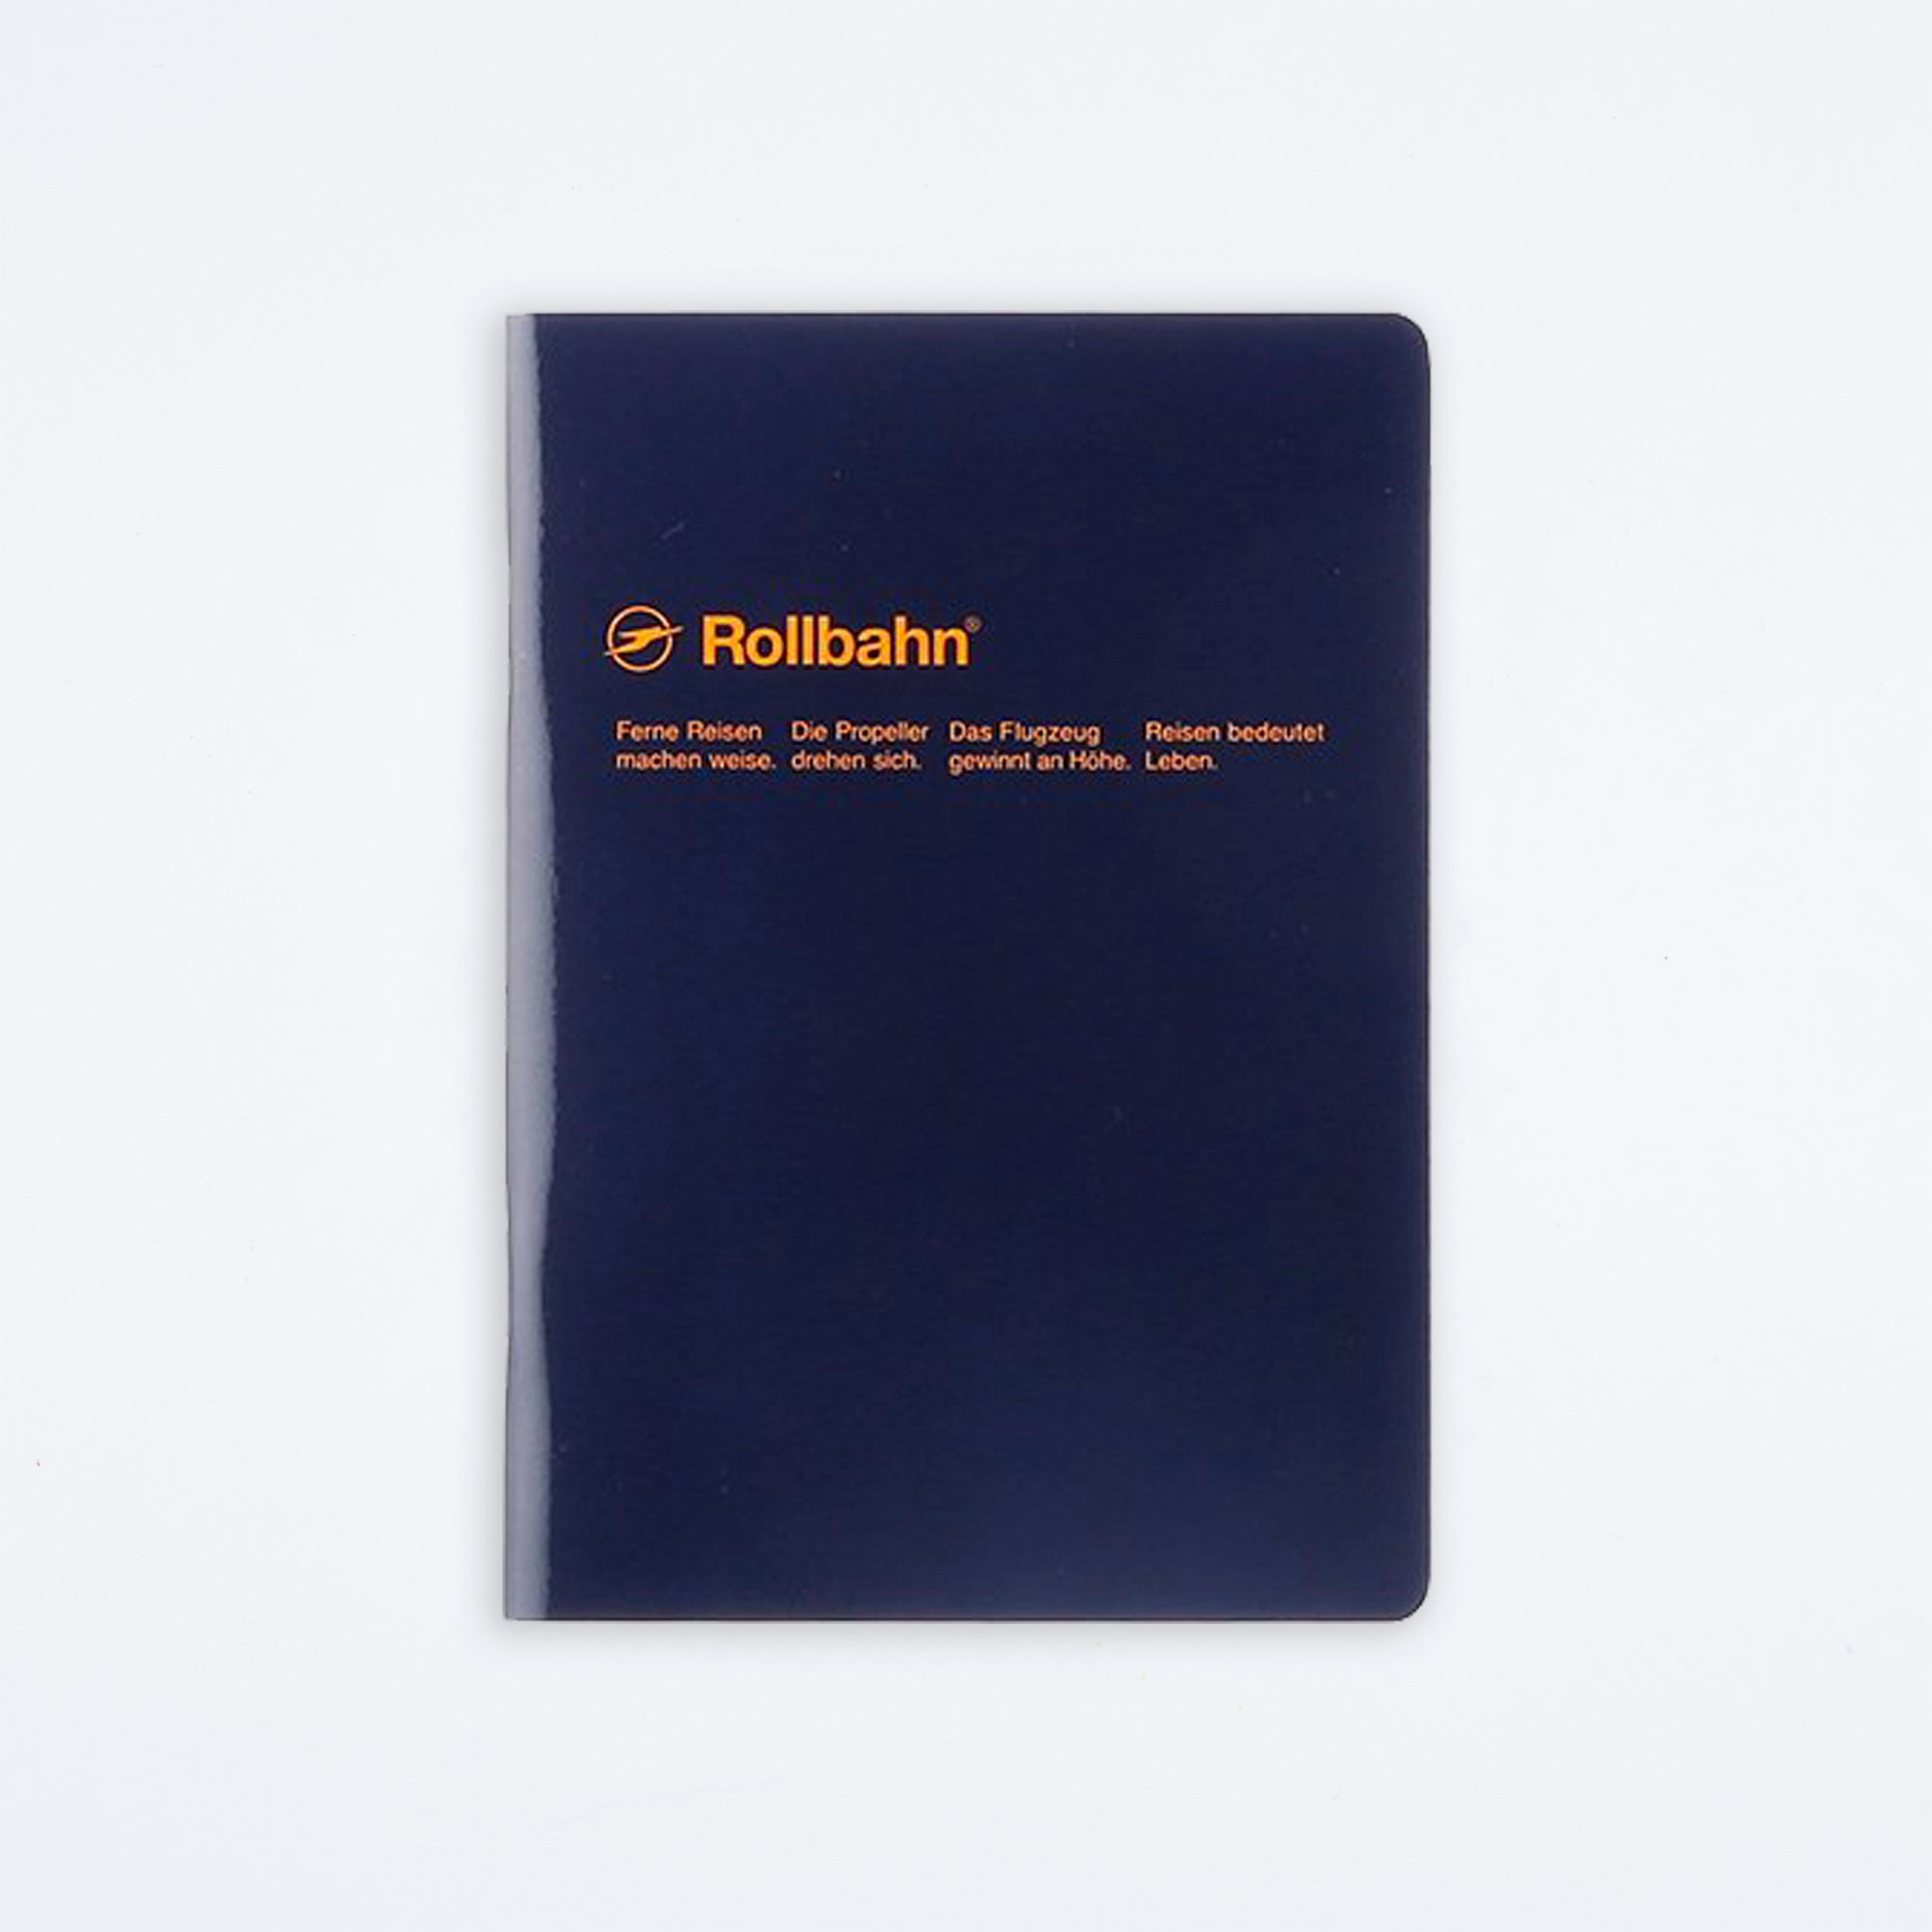 Rollbahn 'Note' A5 Notebook